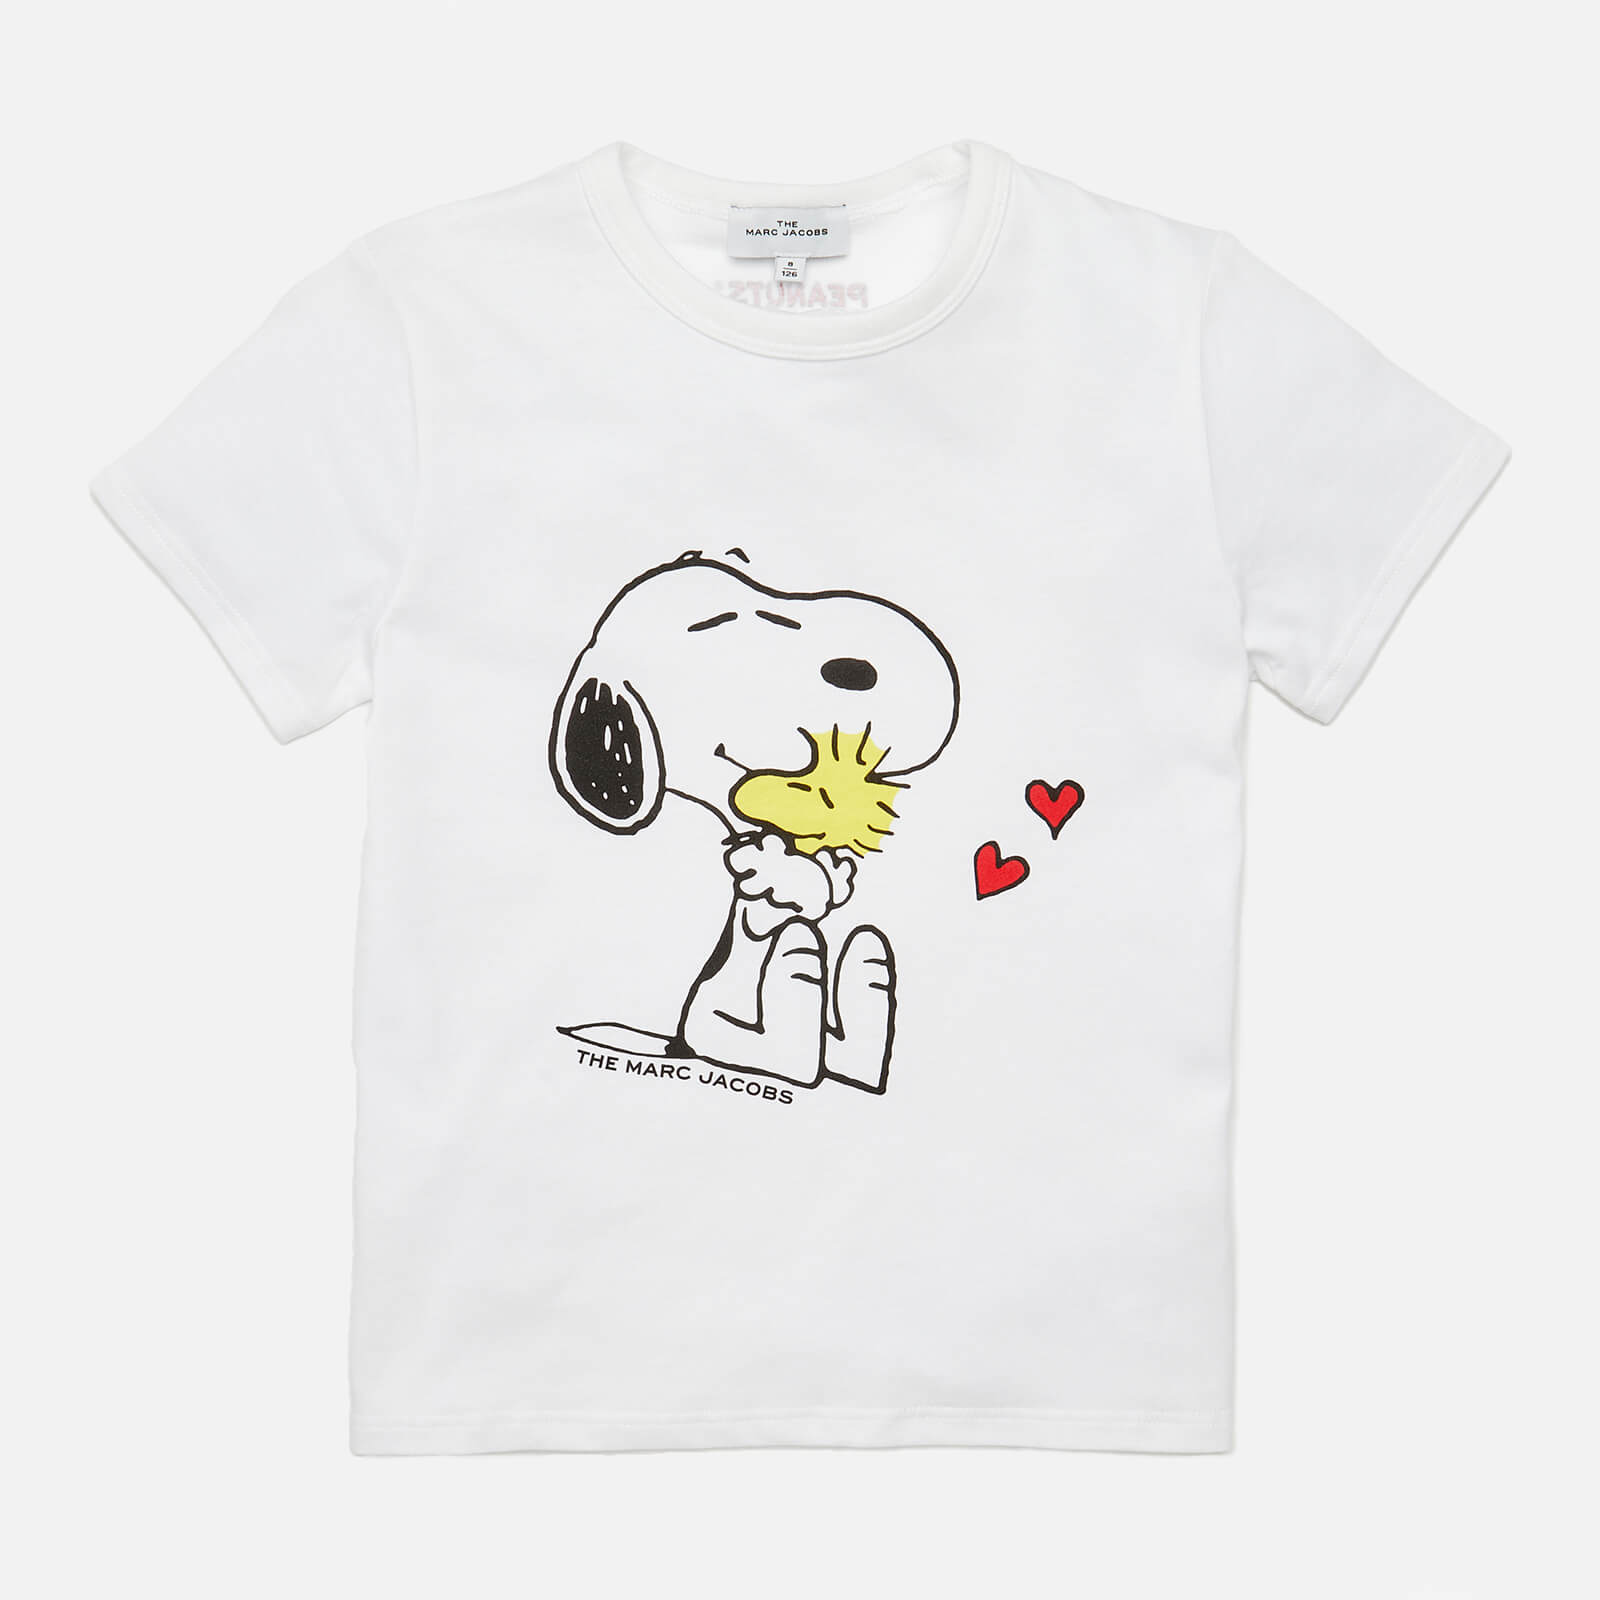 Little Marc Jacobs Girls' Snoopy Short Sleeved T-Shirt - White - 4 Years